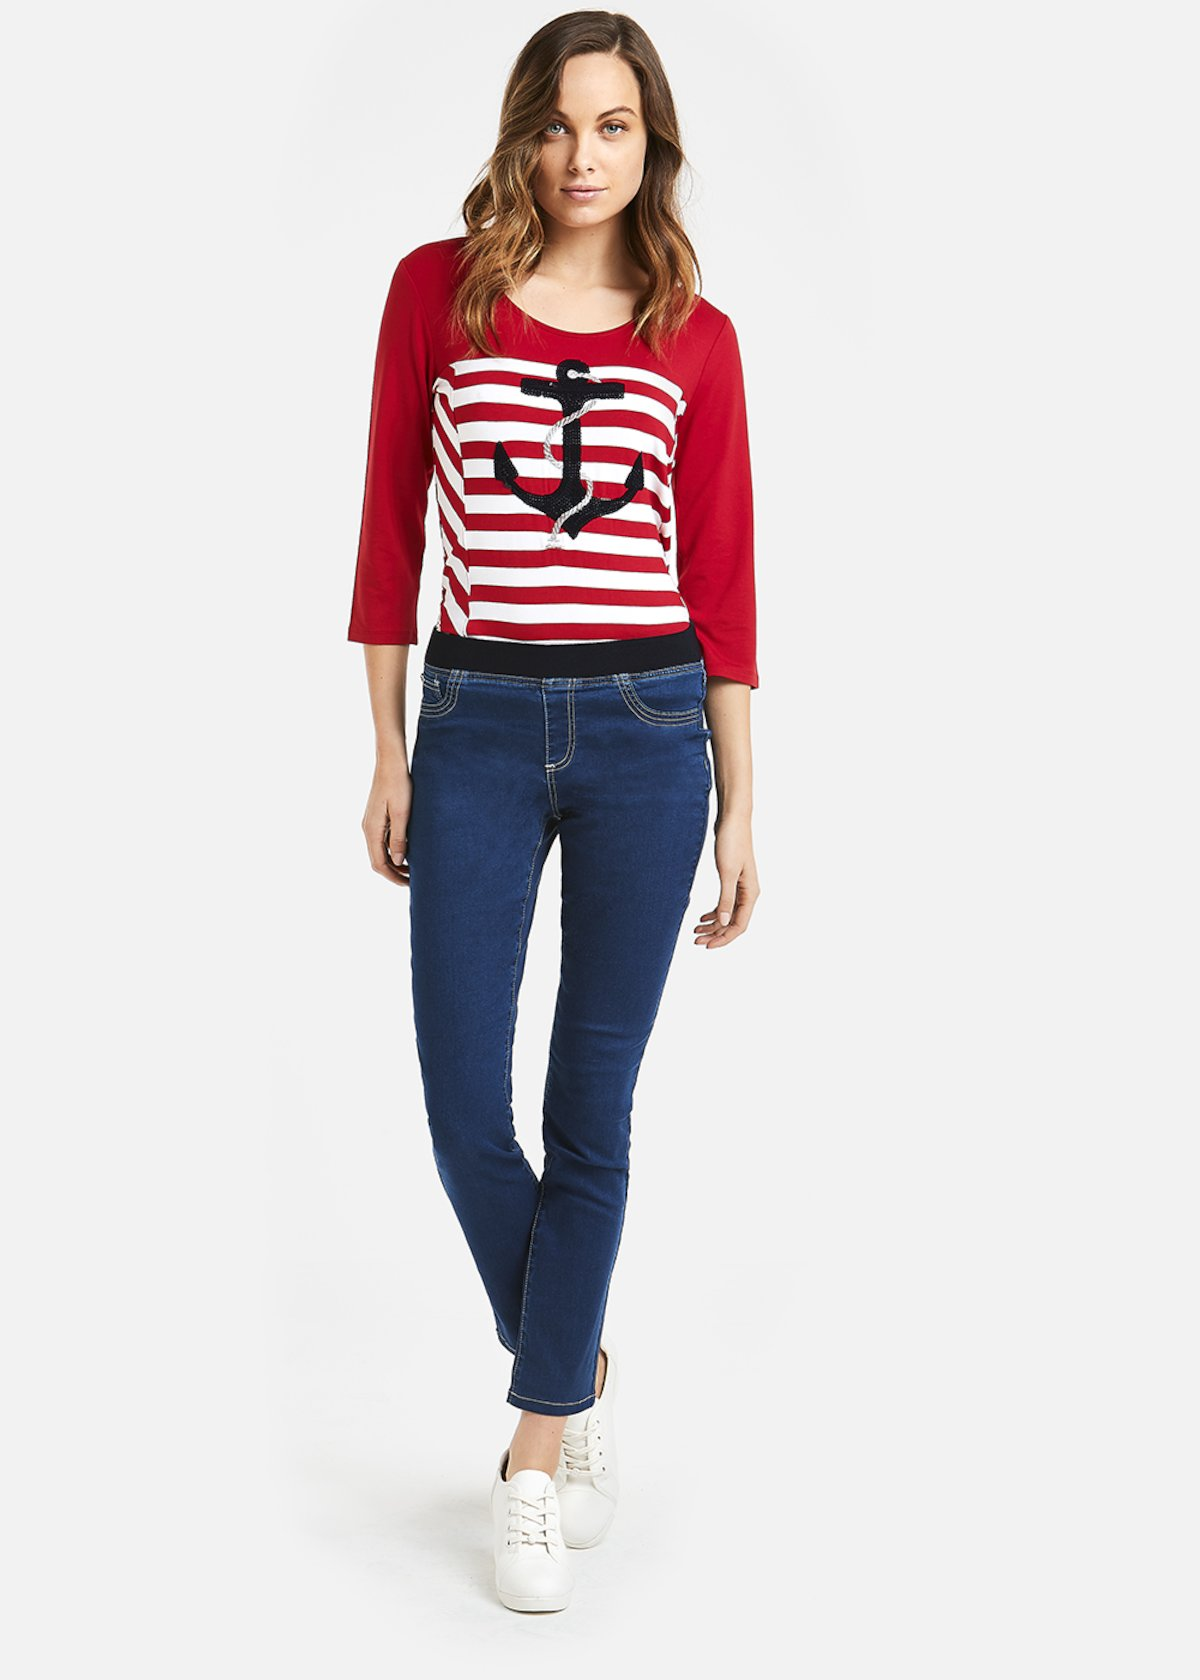 Saint t-shirt with embroidered anchor - Rouge / White Stripes